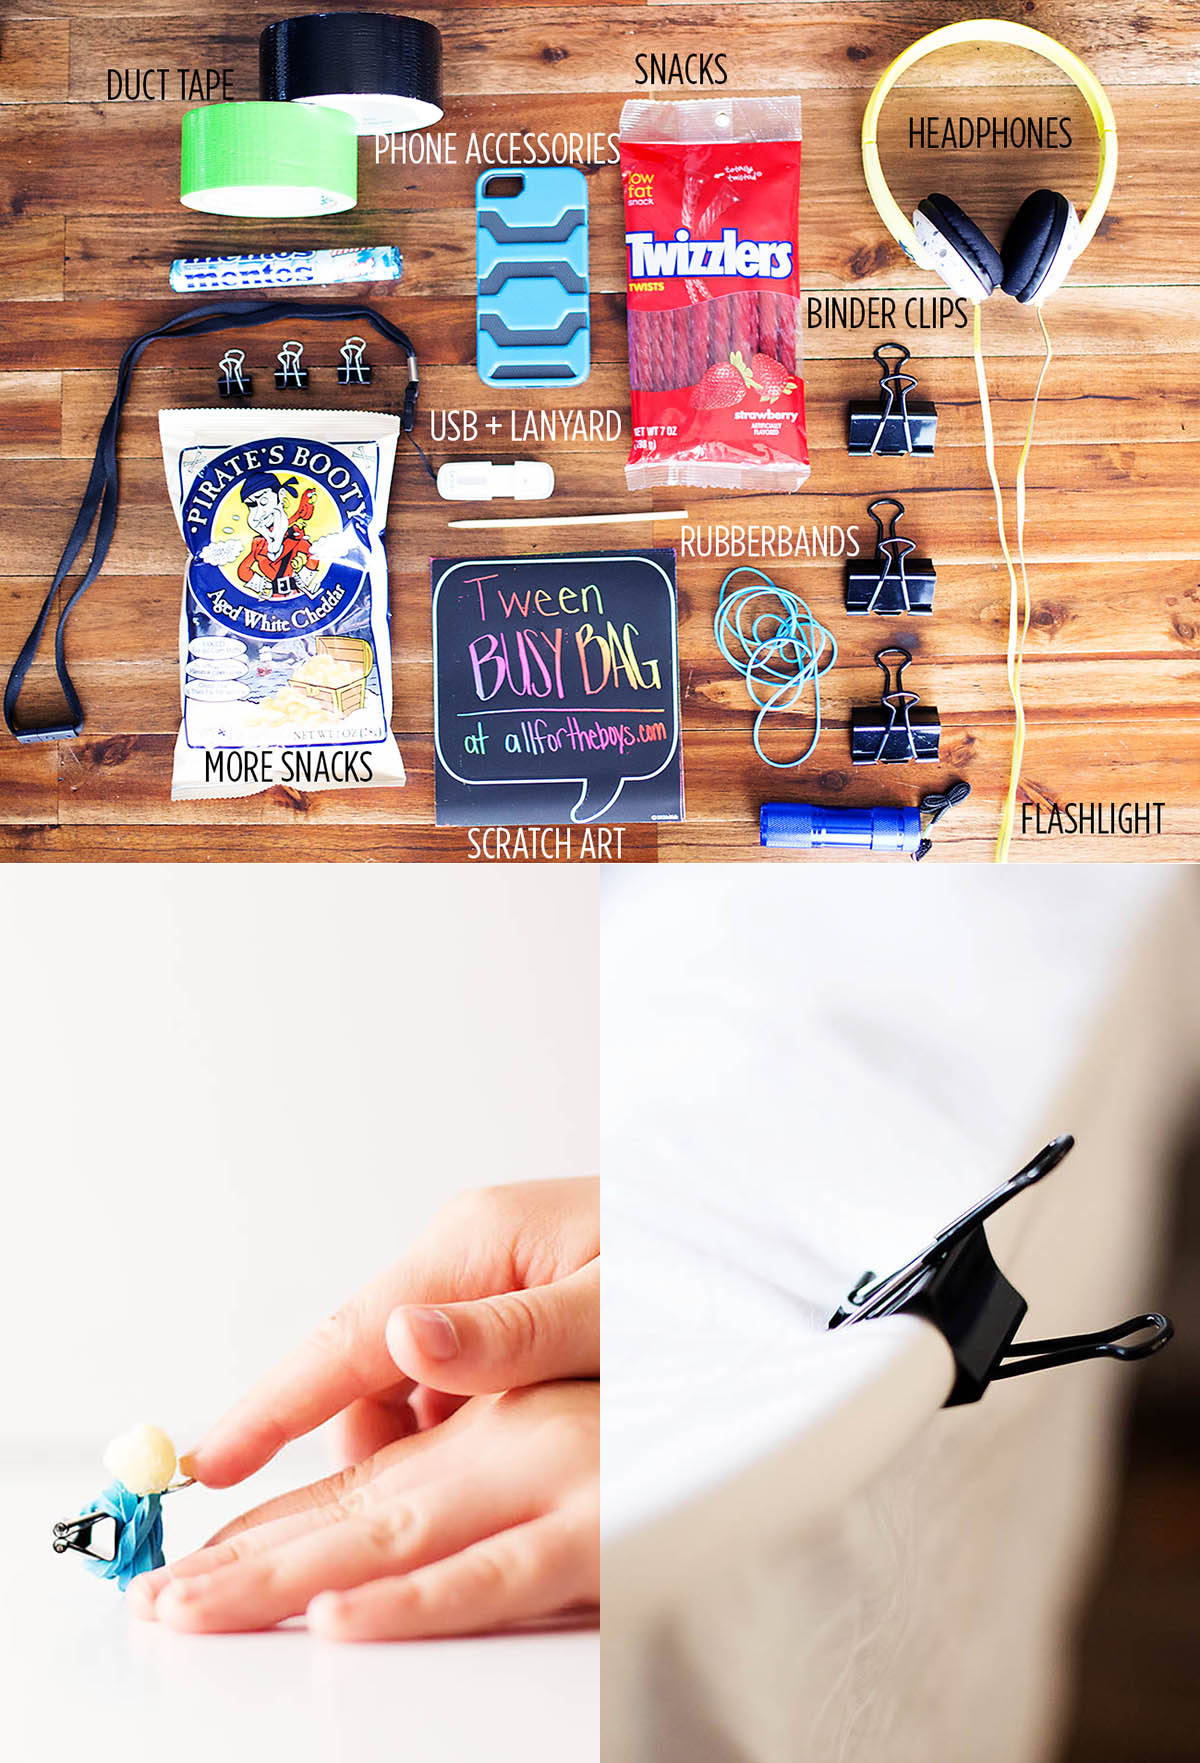 Tween busy bag - interesting ideas and things to pack to keep tweens busy! I love the binder clip ideas